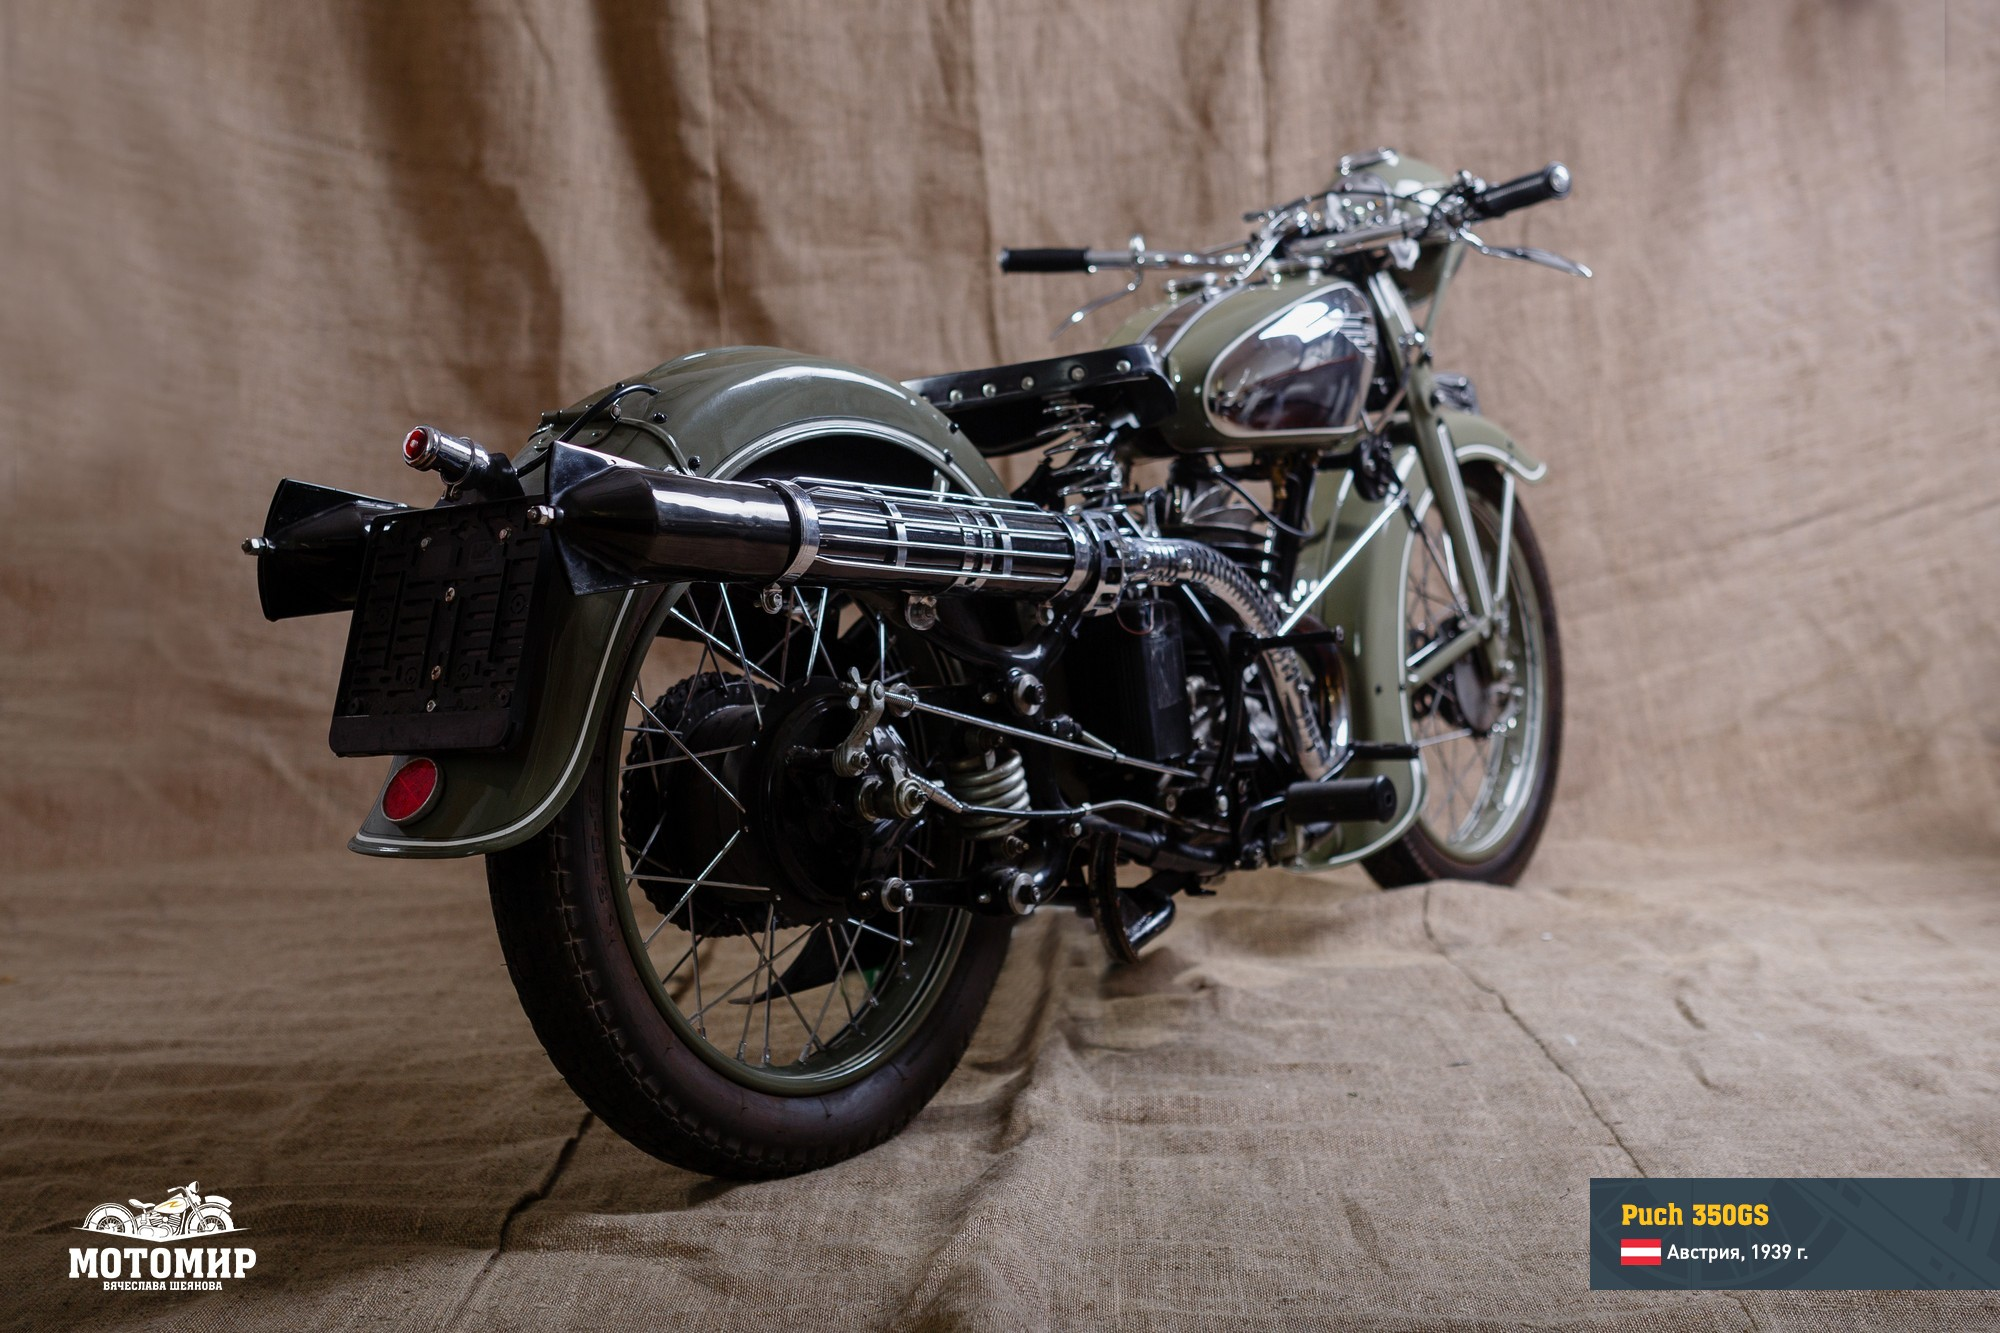 puch-350gs-201601-web-02